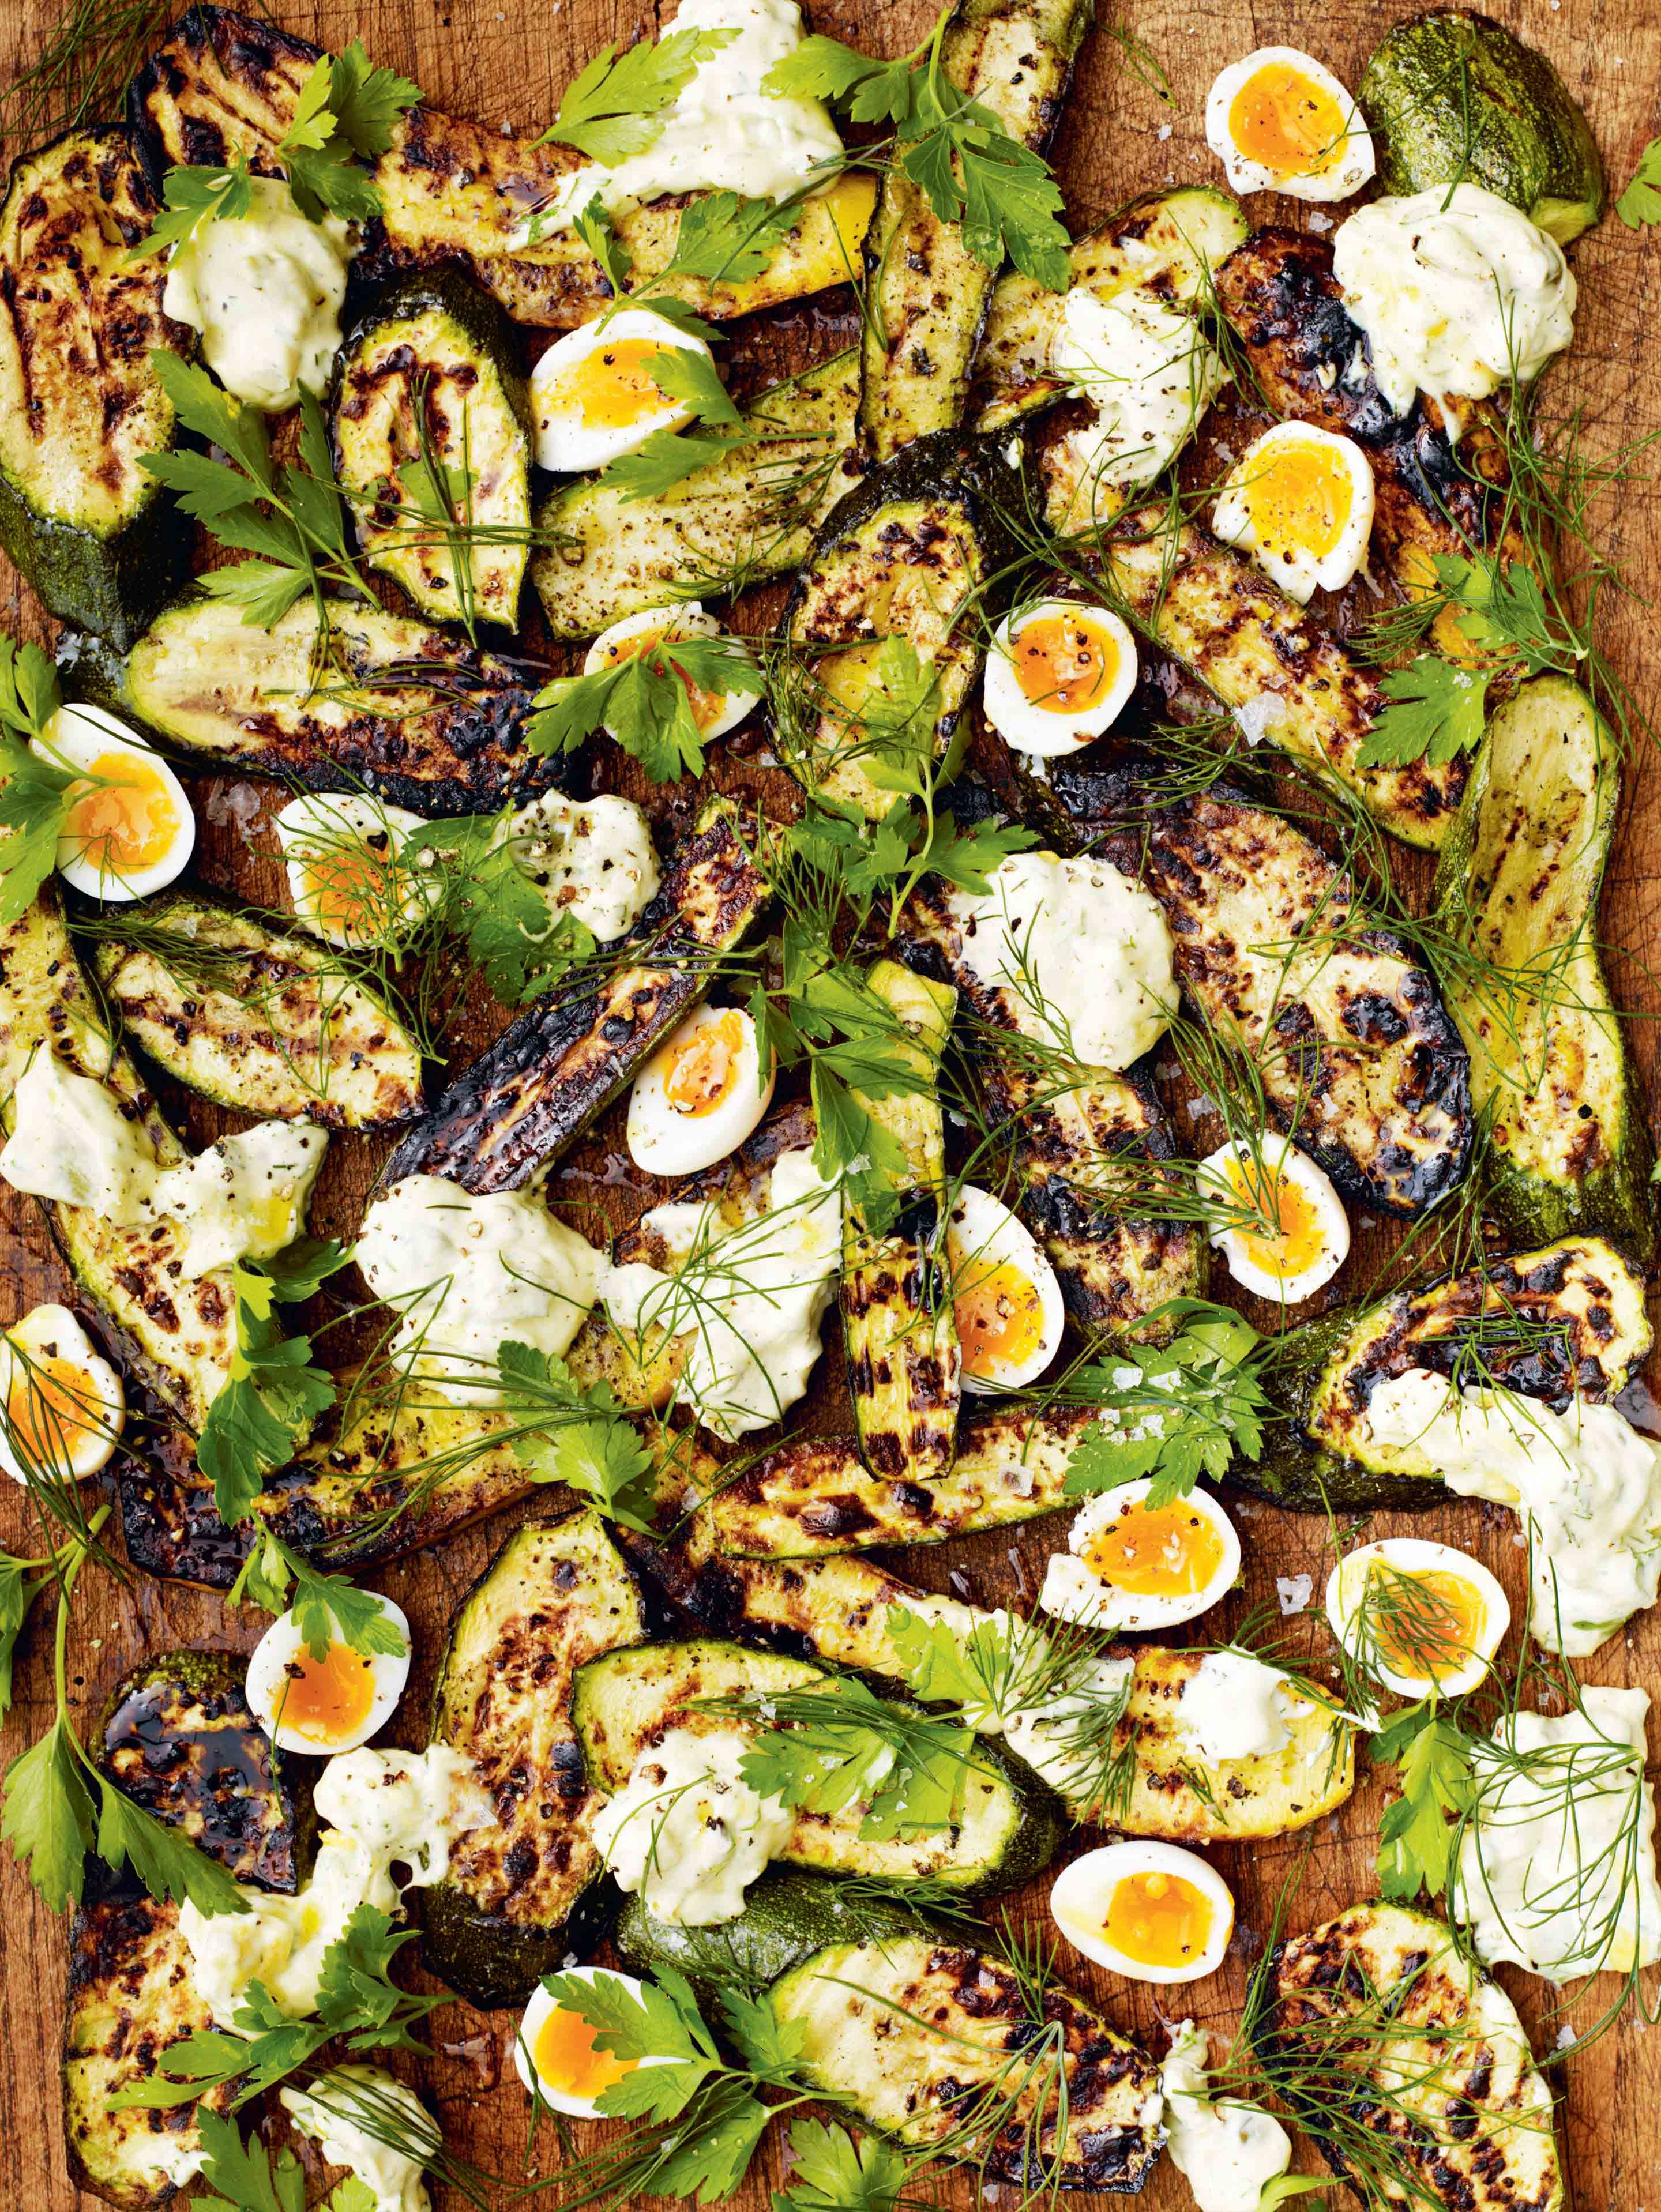 Barbecued courgettes with quail eggs & tartare sauce